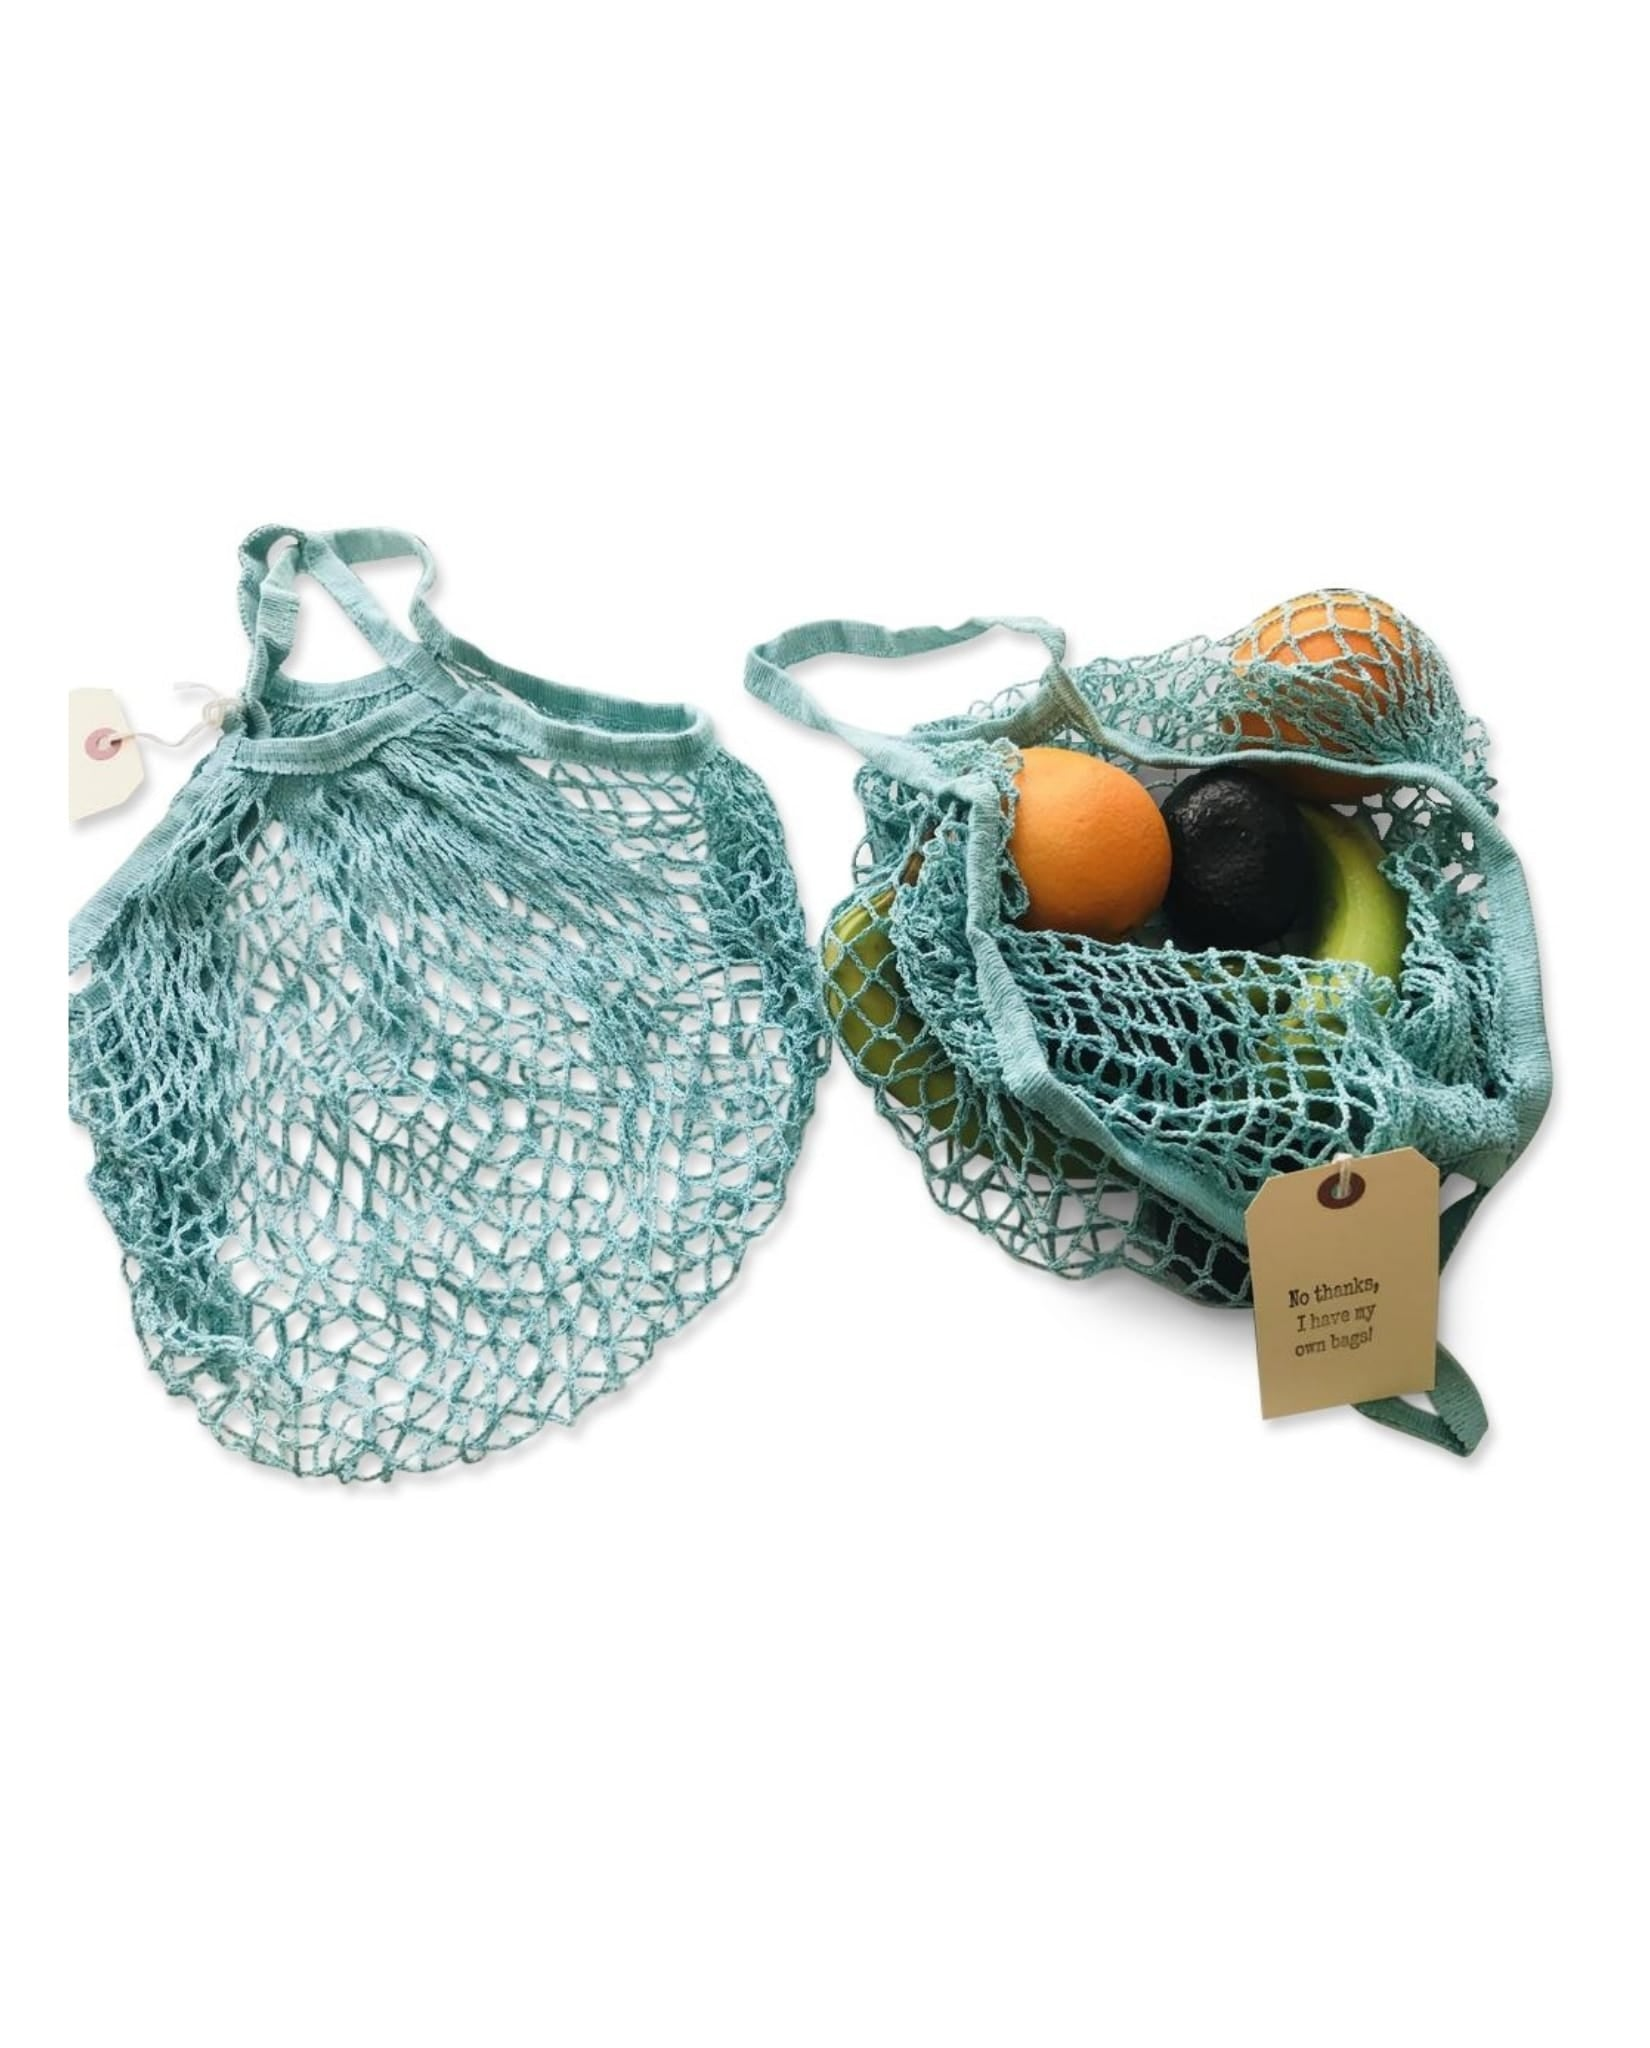 Stretchy Woven Cotton Bag